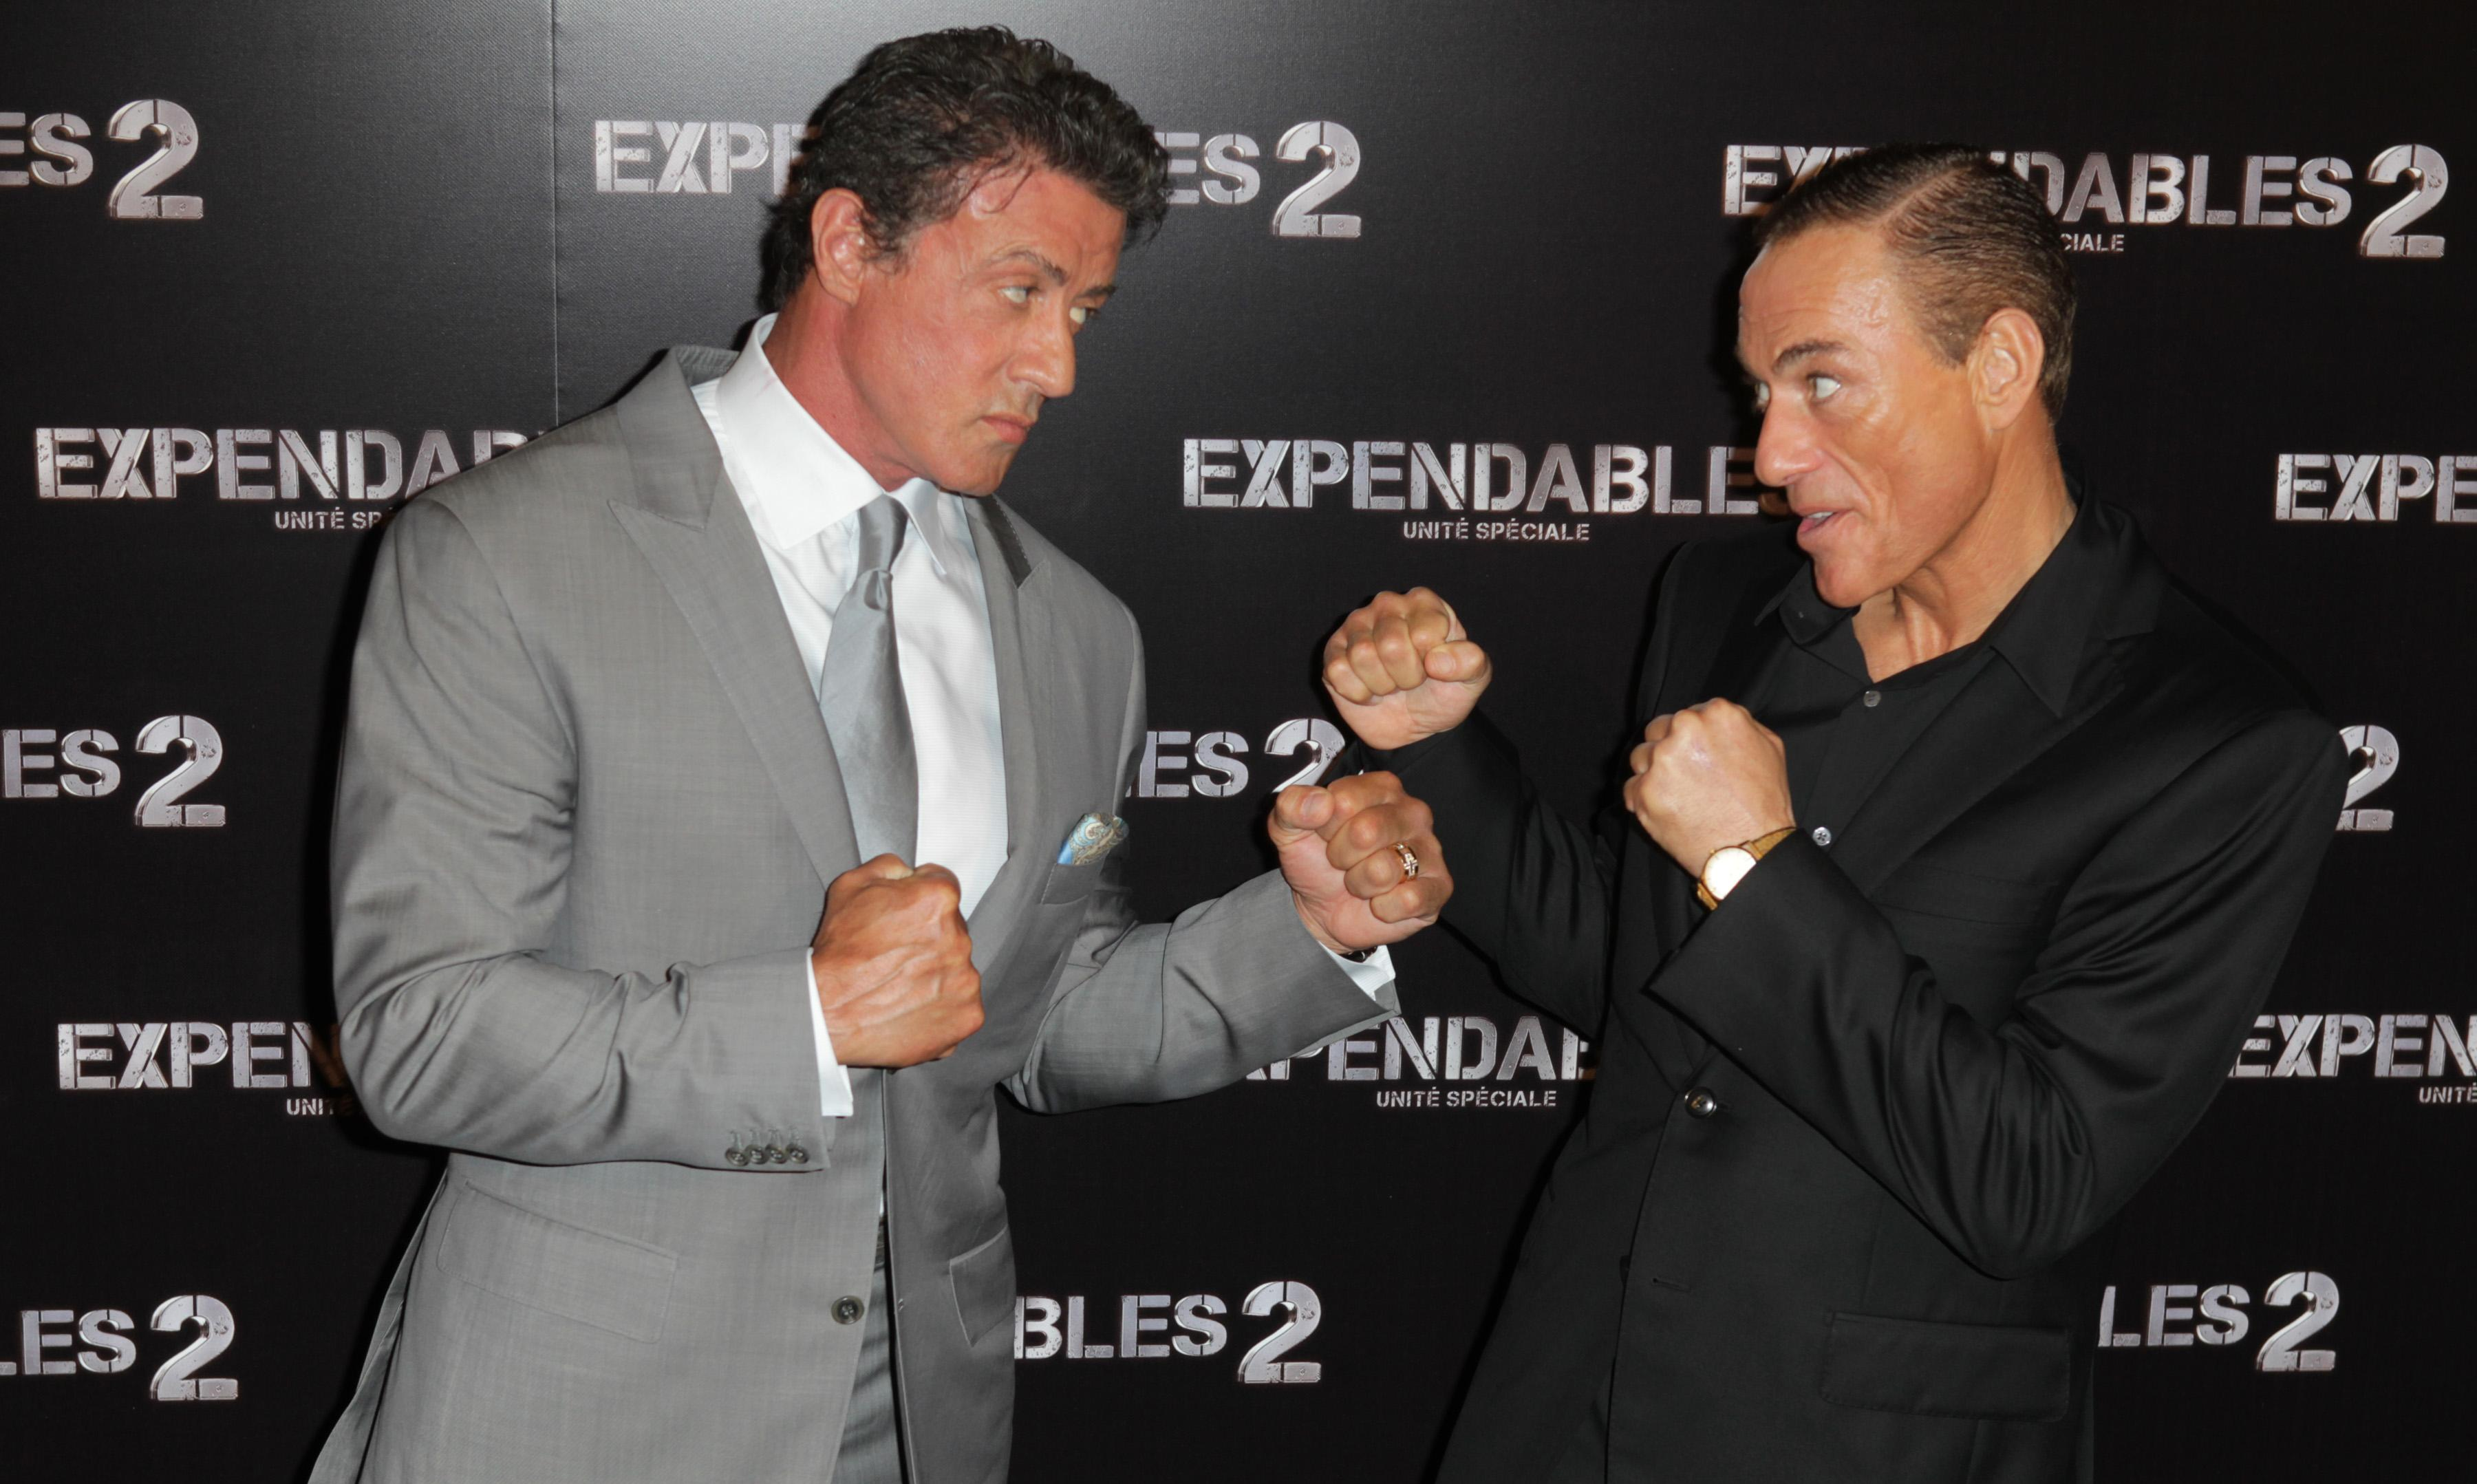 expendables_2_0.jpg